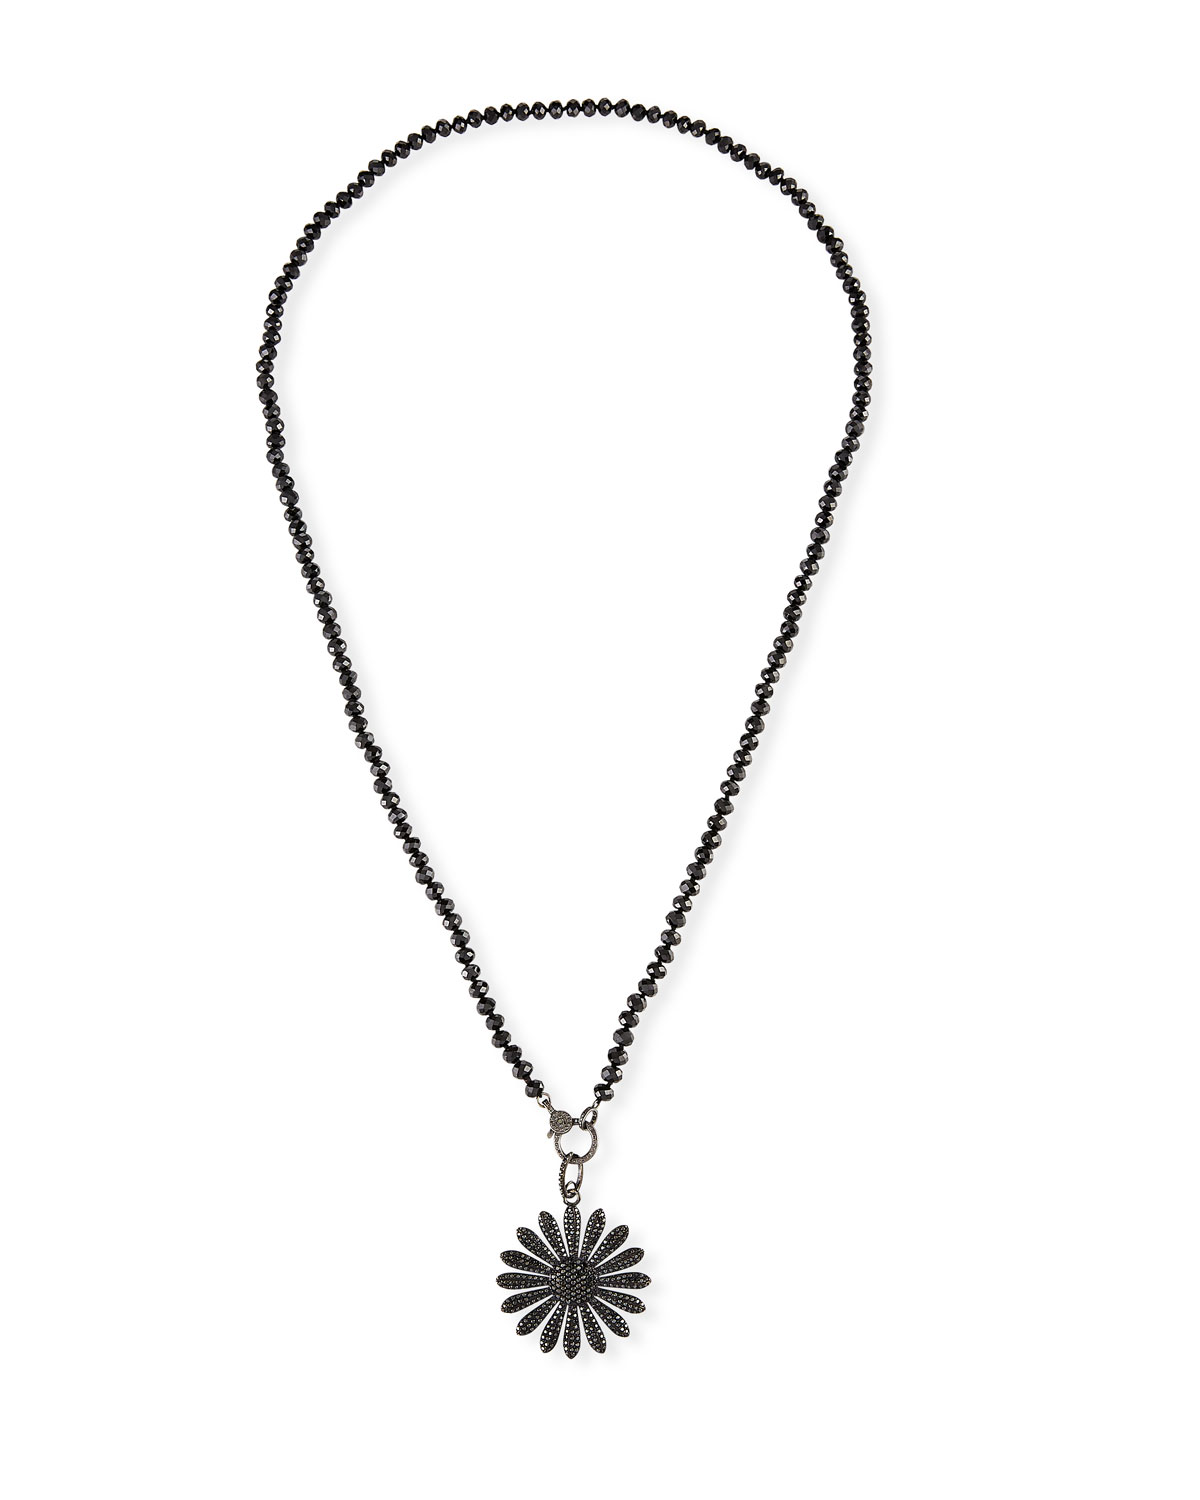 Sheryl Lowe black diamond daisy necklace. Sterling silver hardware and settings. Daisy pendant with black diamonds. Smooth semi-round black spinel. 6.08 total diamond carat weight. Lobster clasp. Approx. 42\